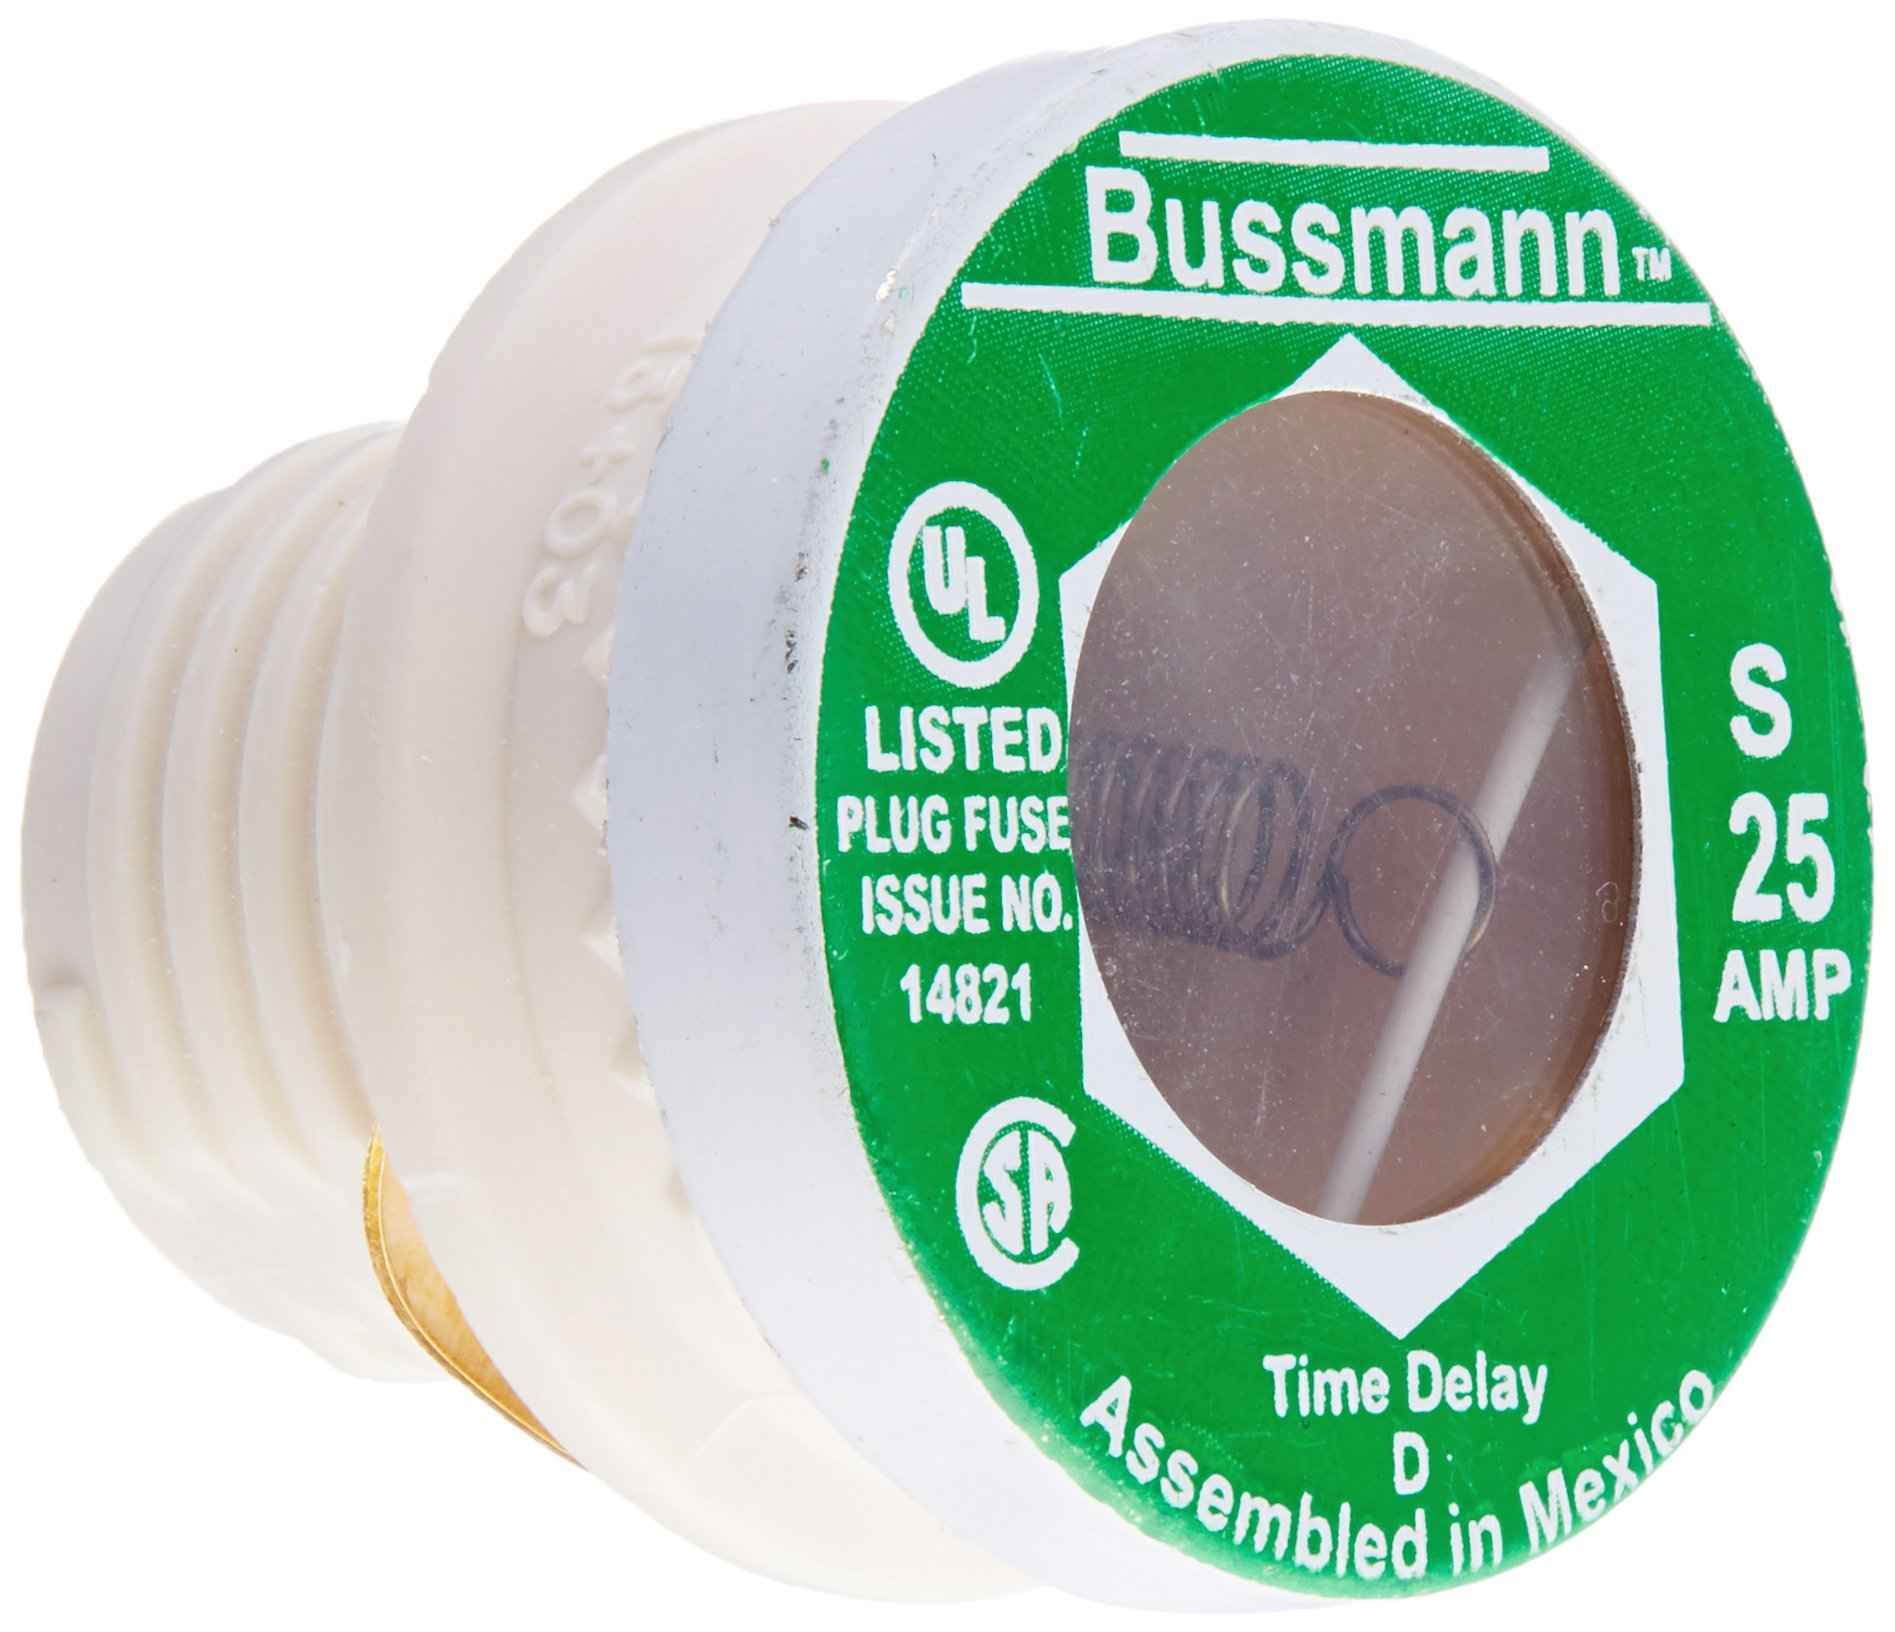 Bussmann S-25 25 Amp Type S Time-Delay Dual-Element Plug Fuse Rejection Base,  125V UL Listed - - Amazon.com